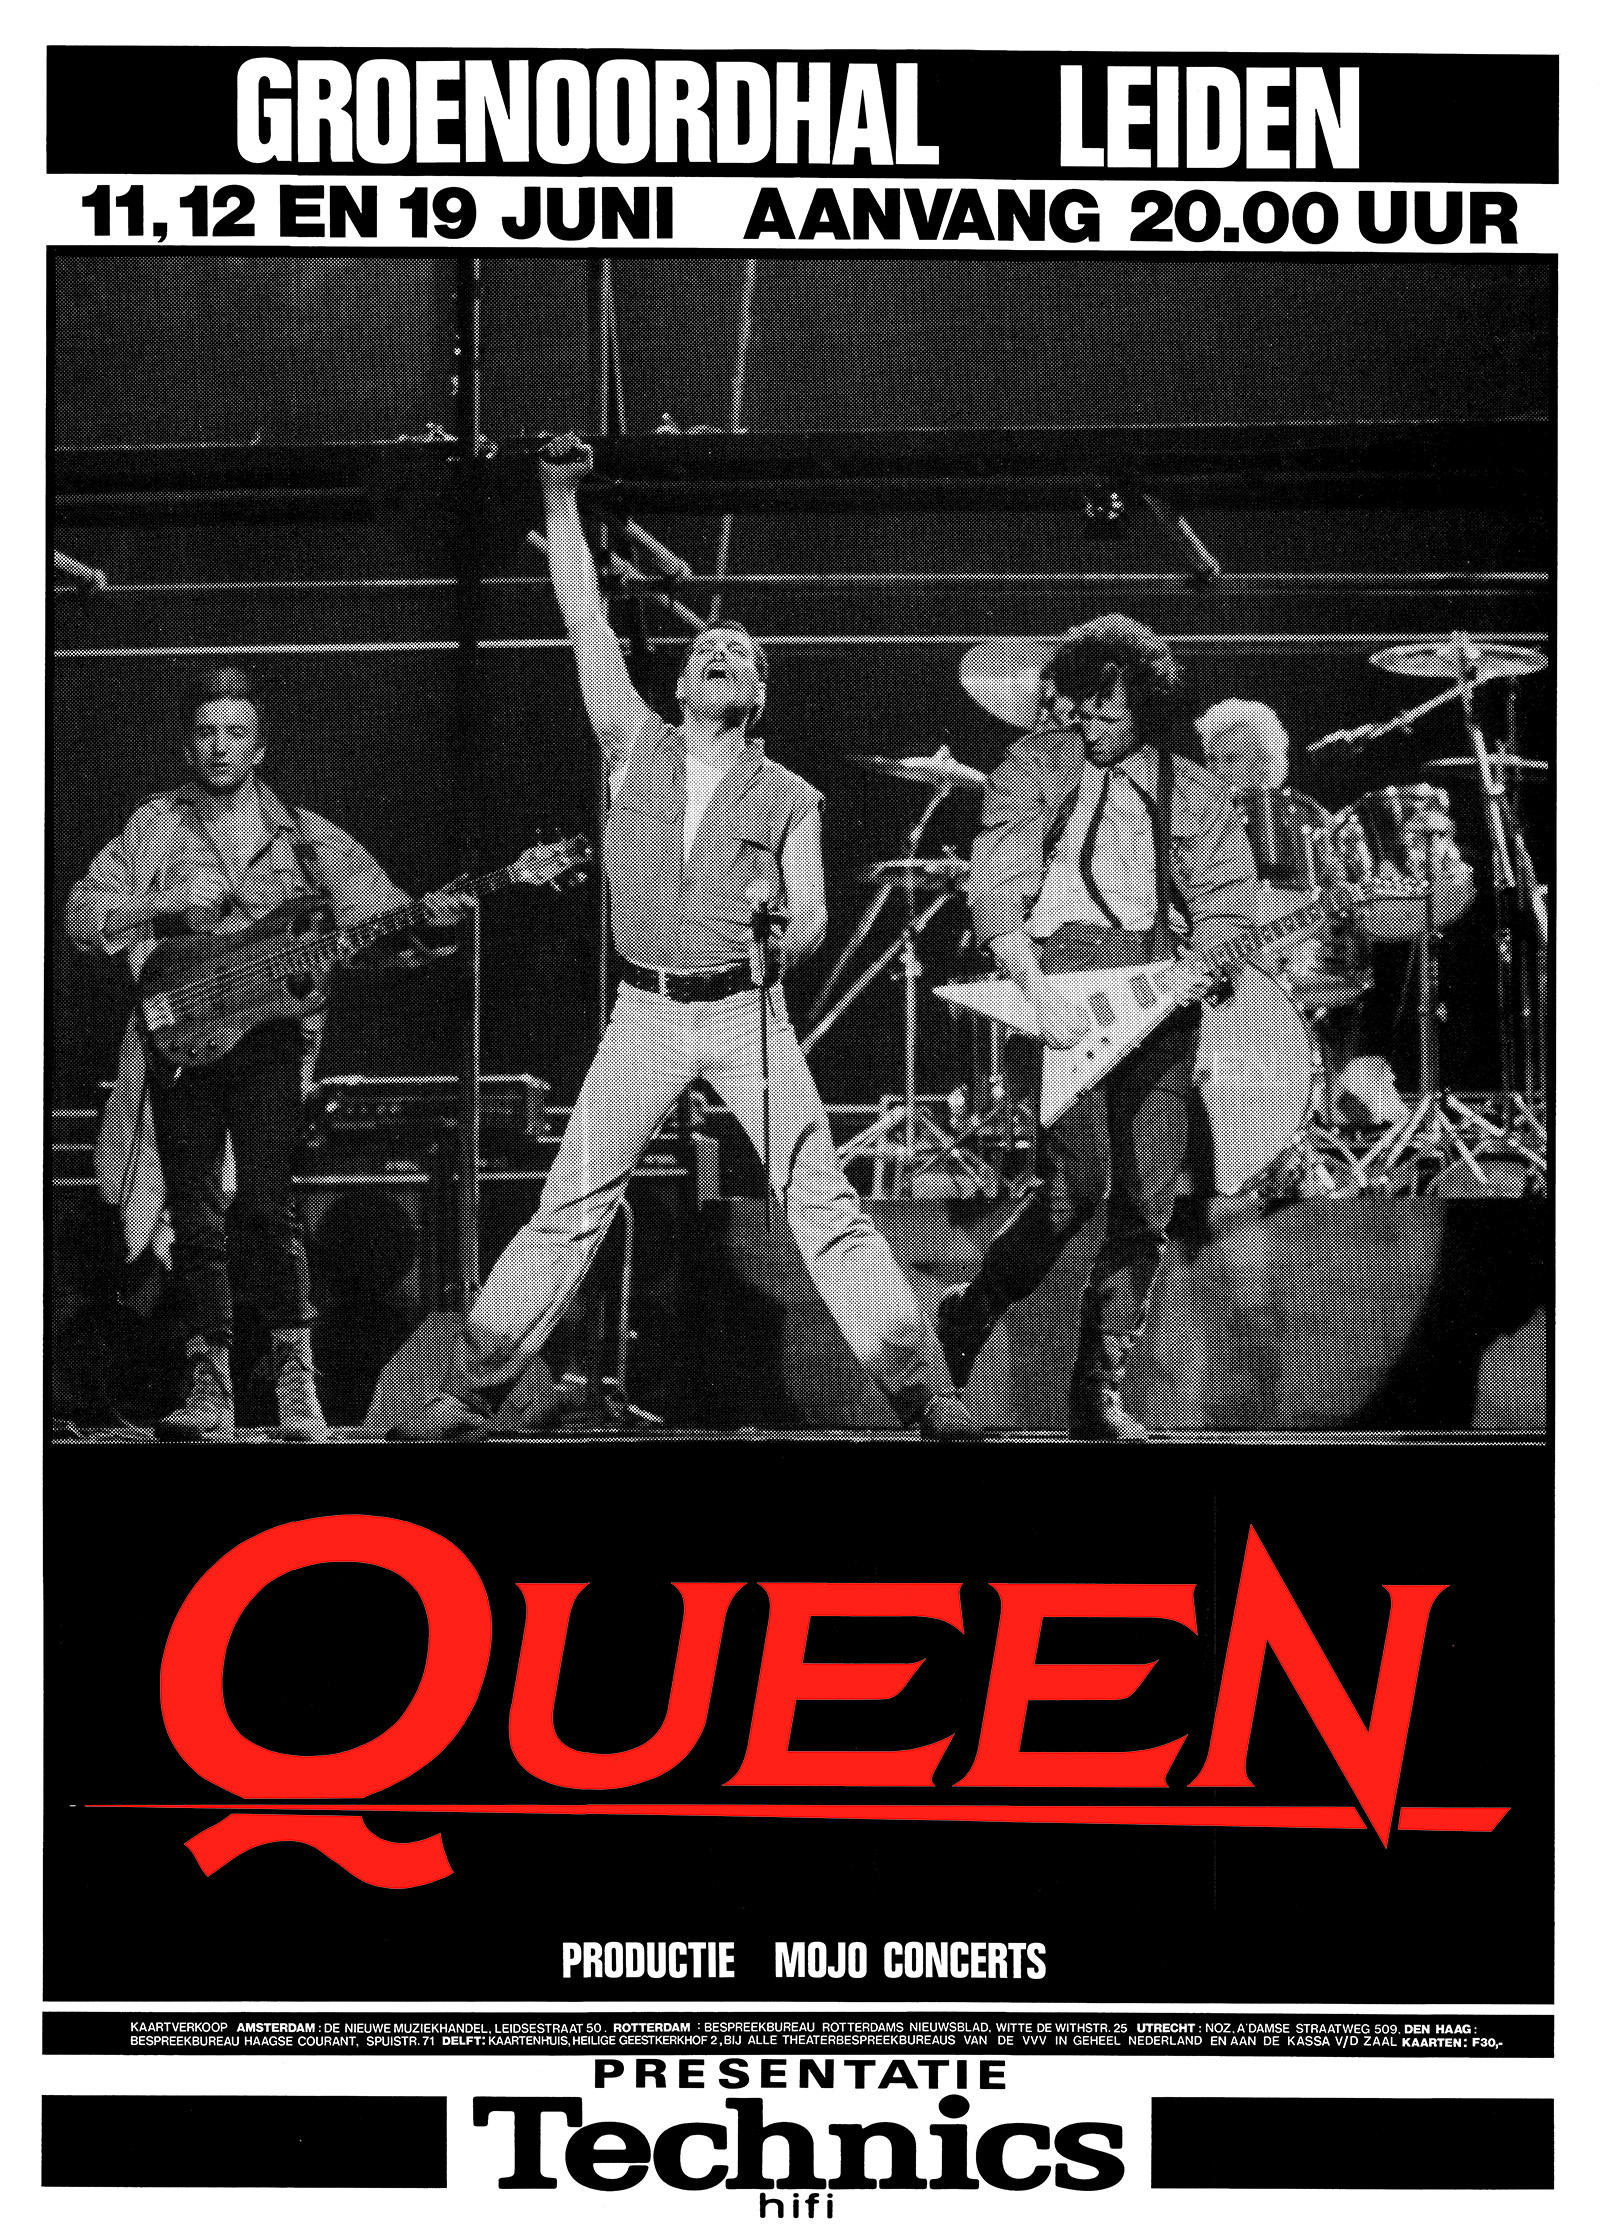 Queen in Leiden on 11.-12.06.1986